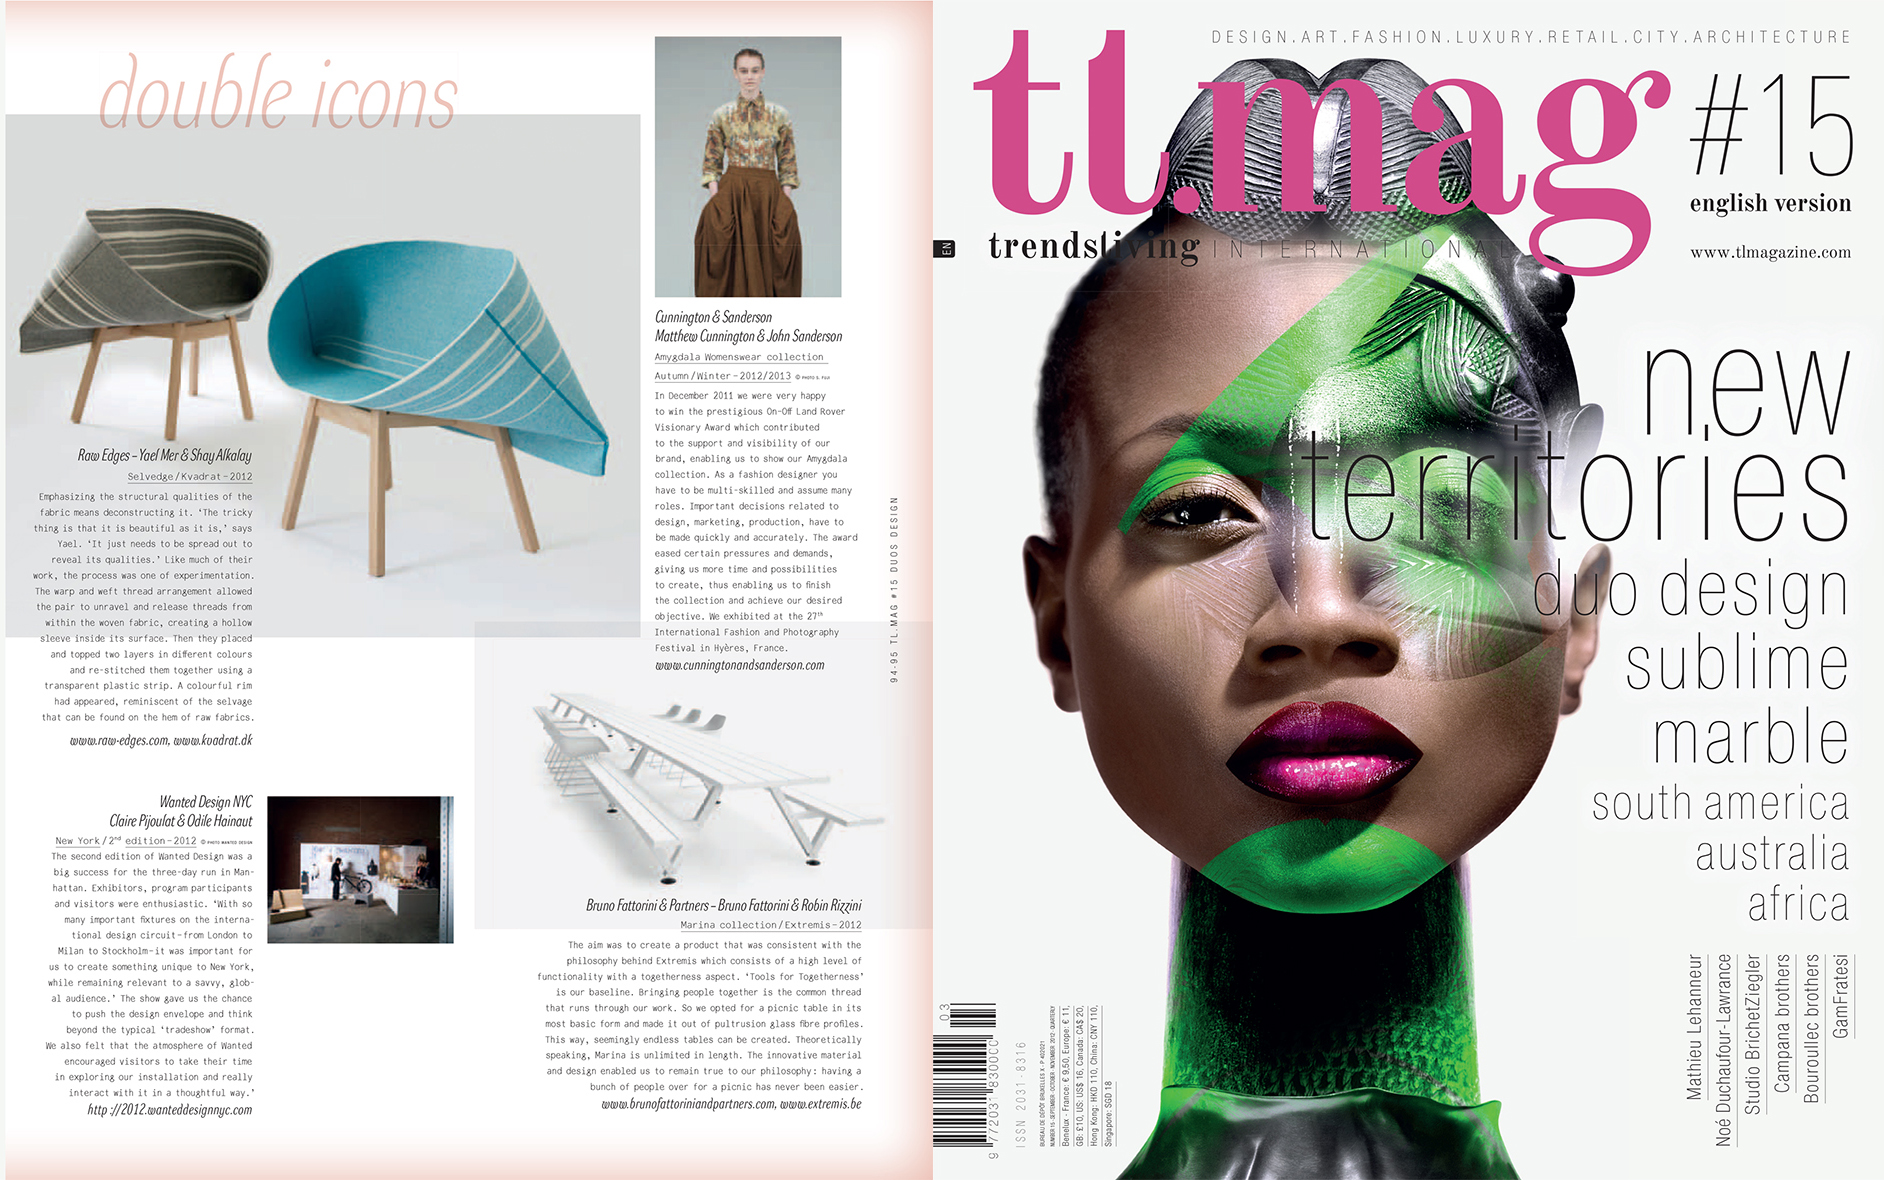 tlmag editorial duo designers